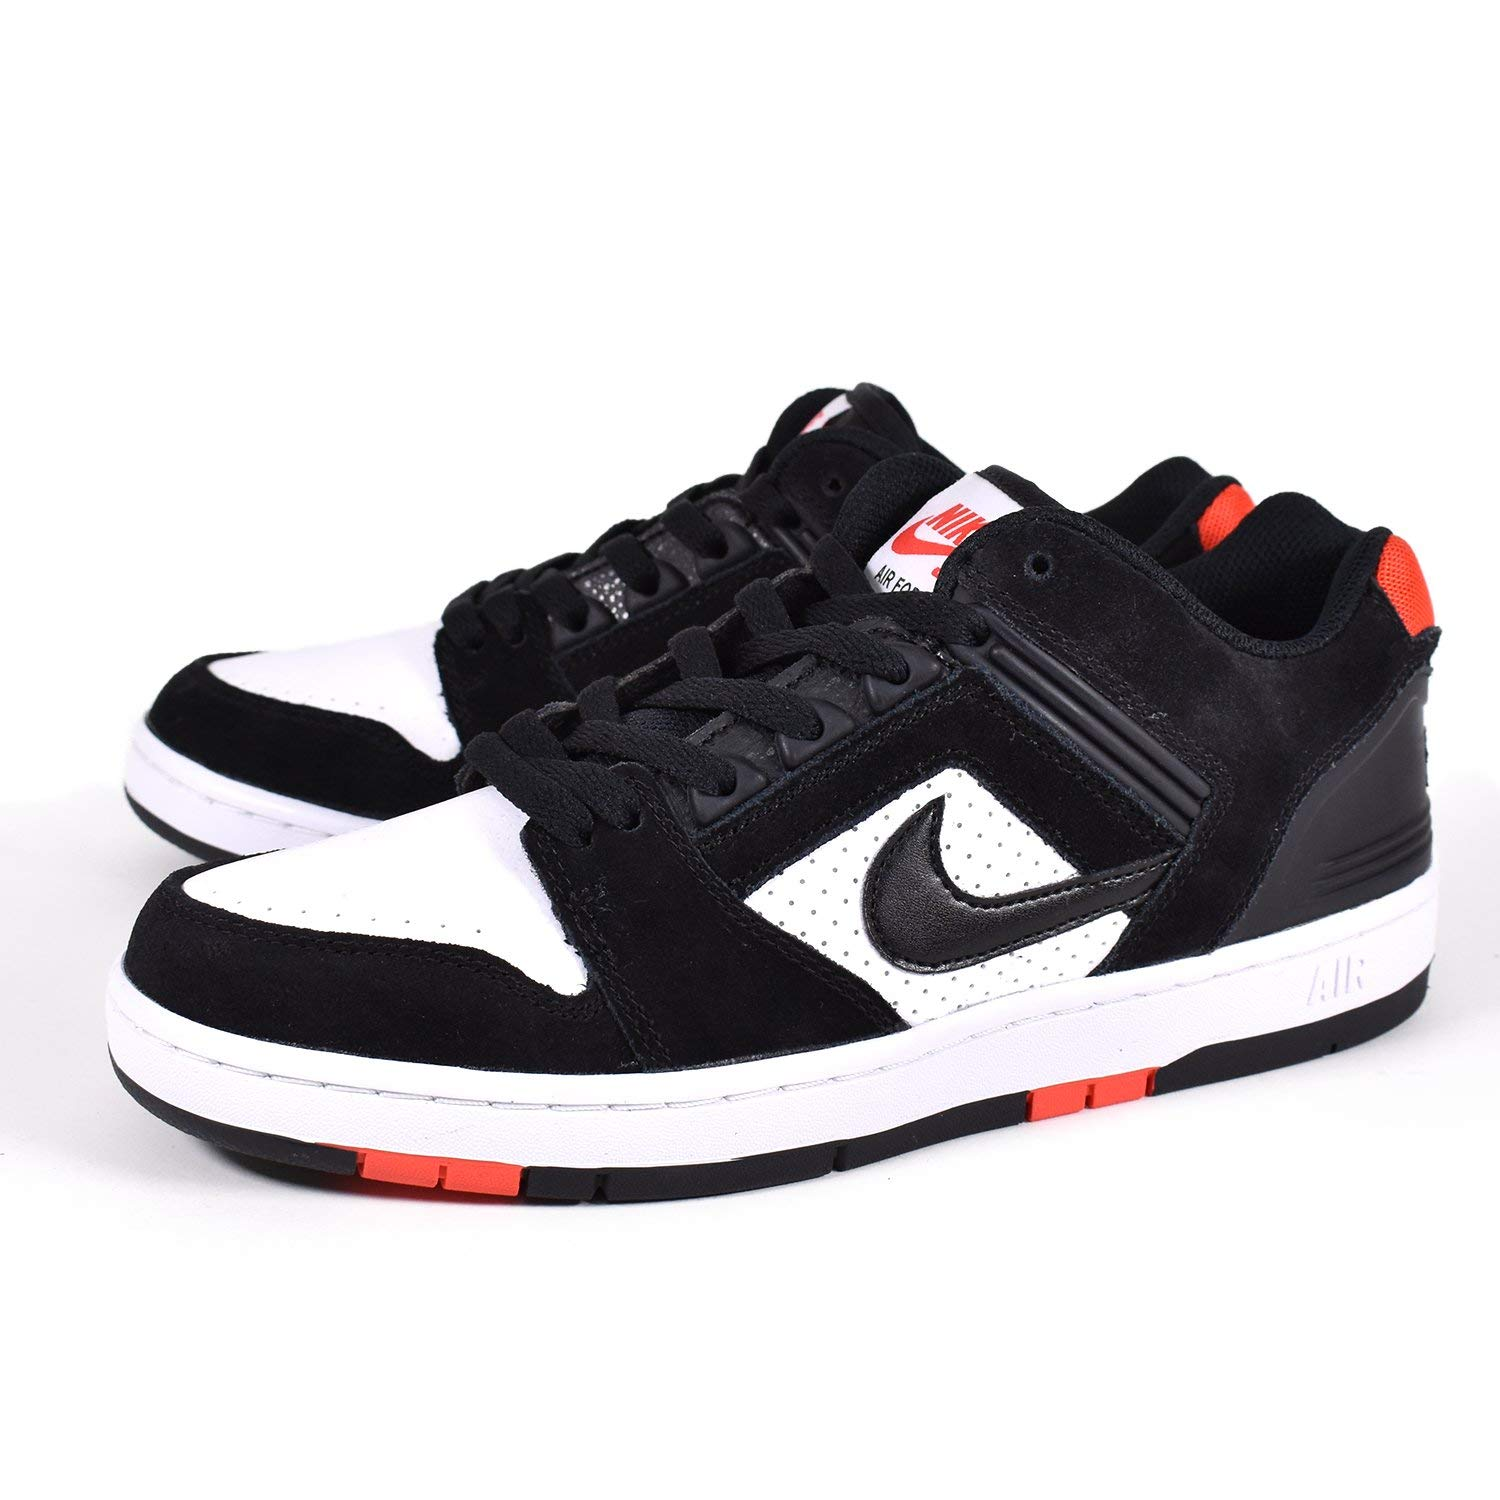 Nike Men s SB Air Force II Low, Black Black-White-Habanero RED